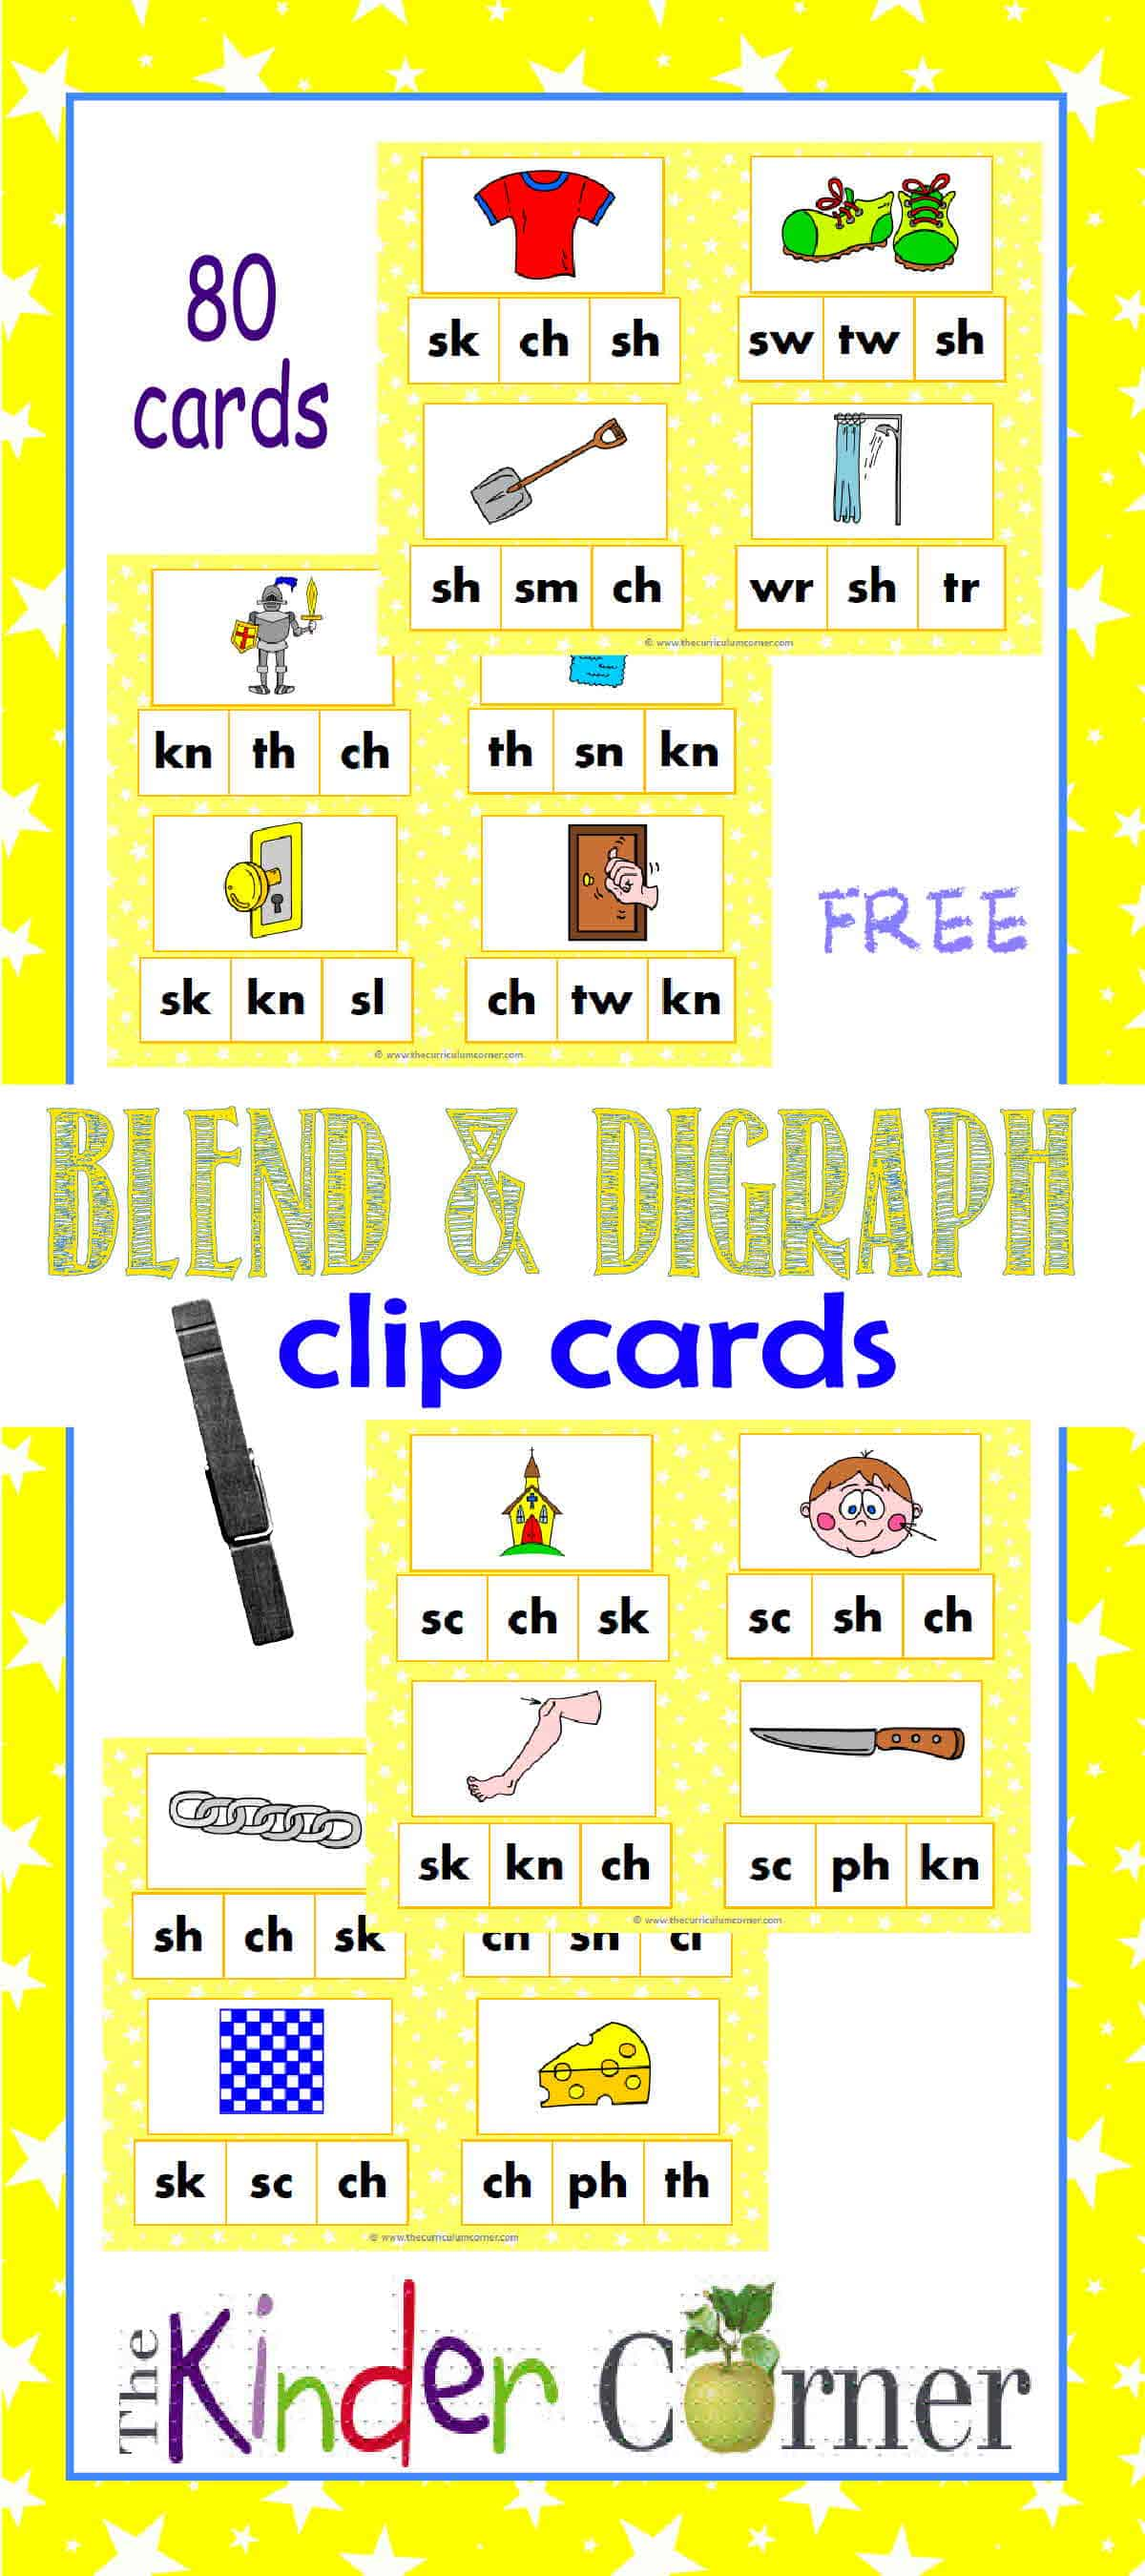 Blends & Digraphs Clip Cards